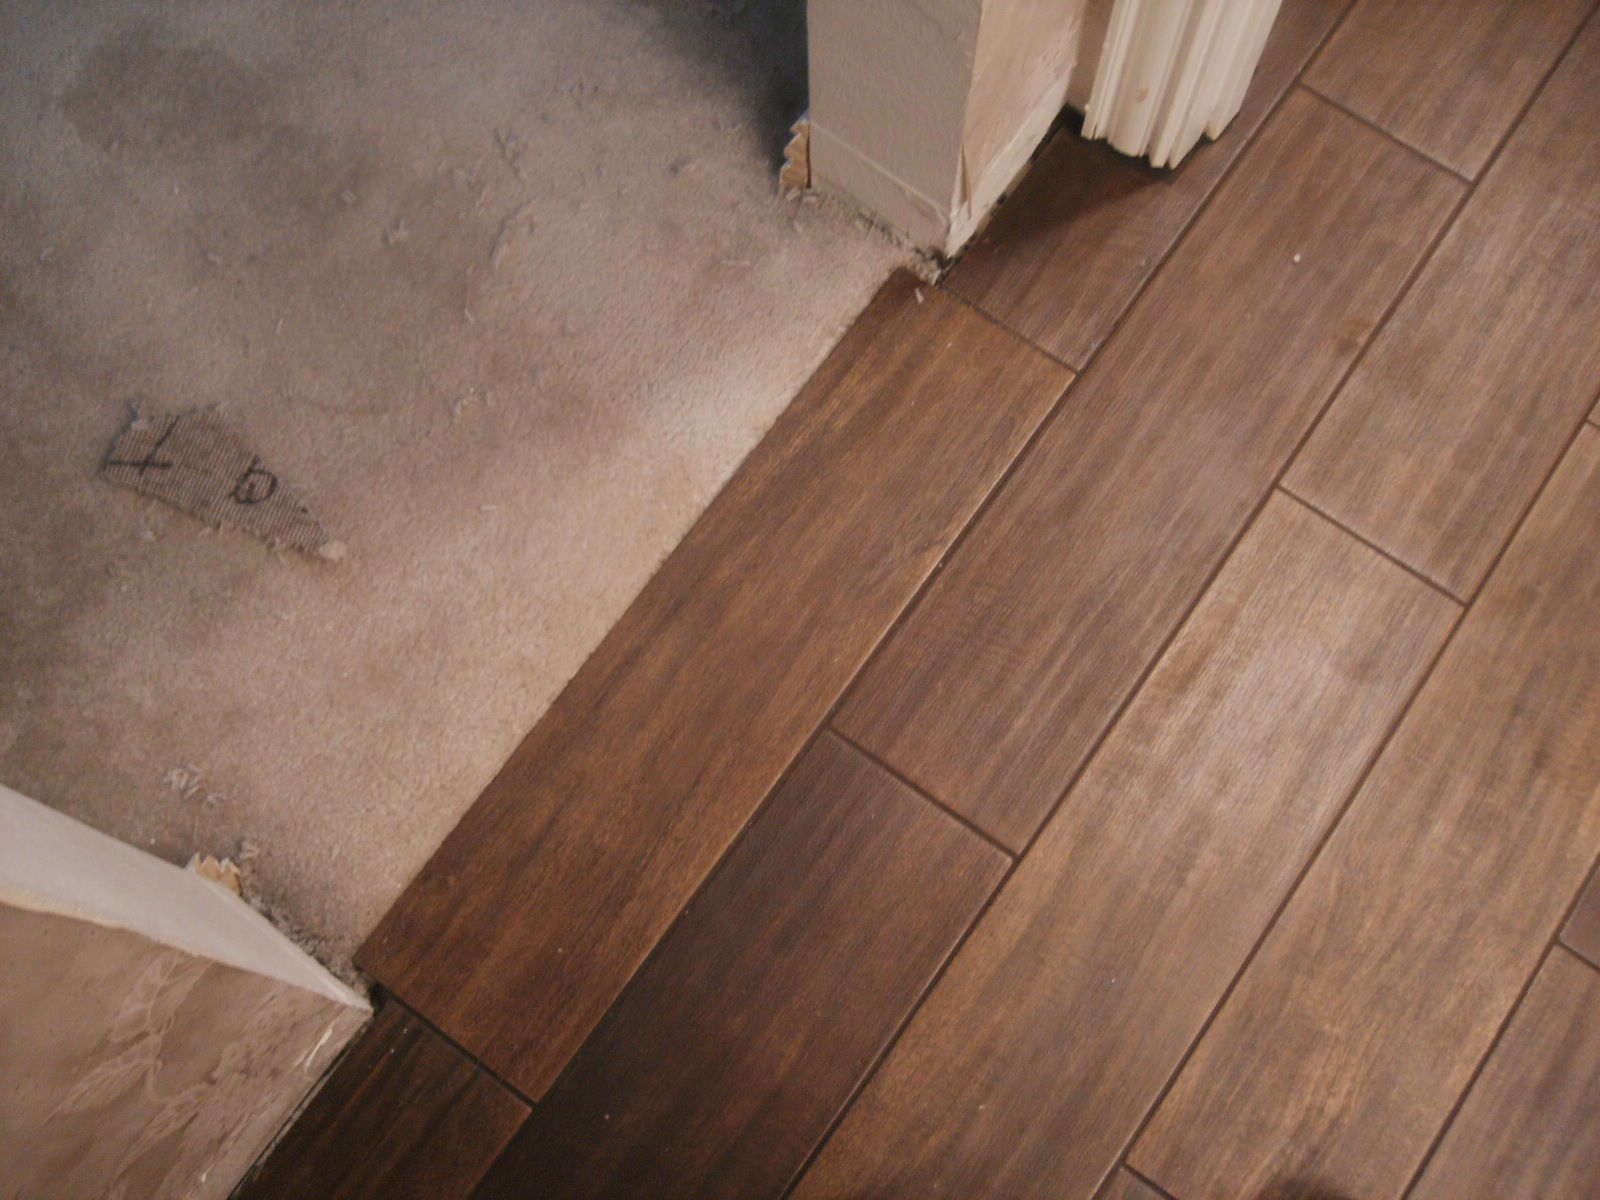 Wood 15x60 Collection Of Porcelain Tiles Wood Effect Floor And Wall